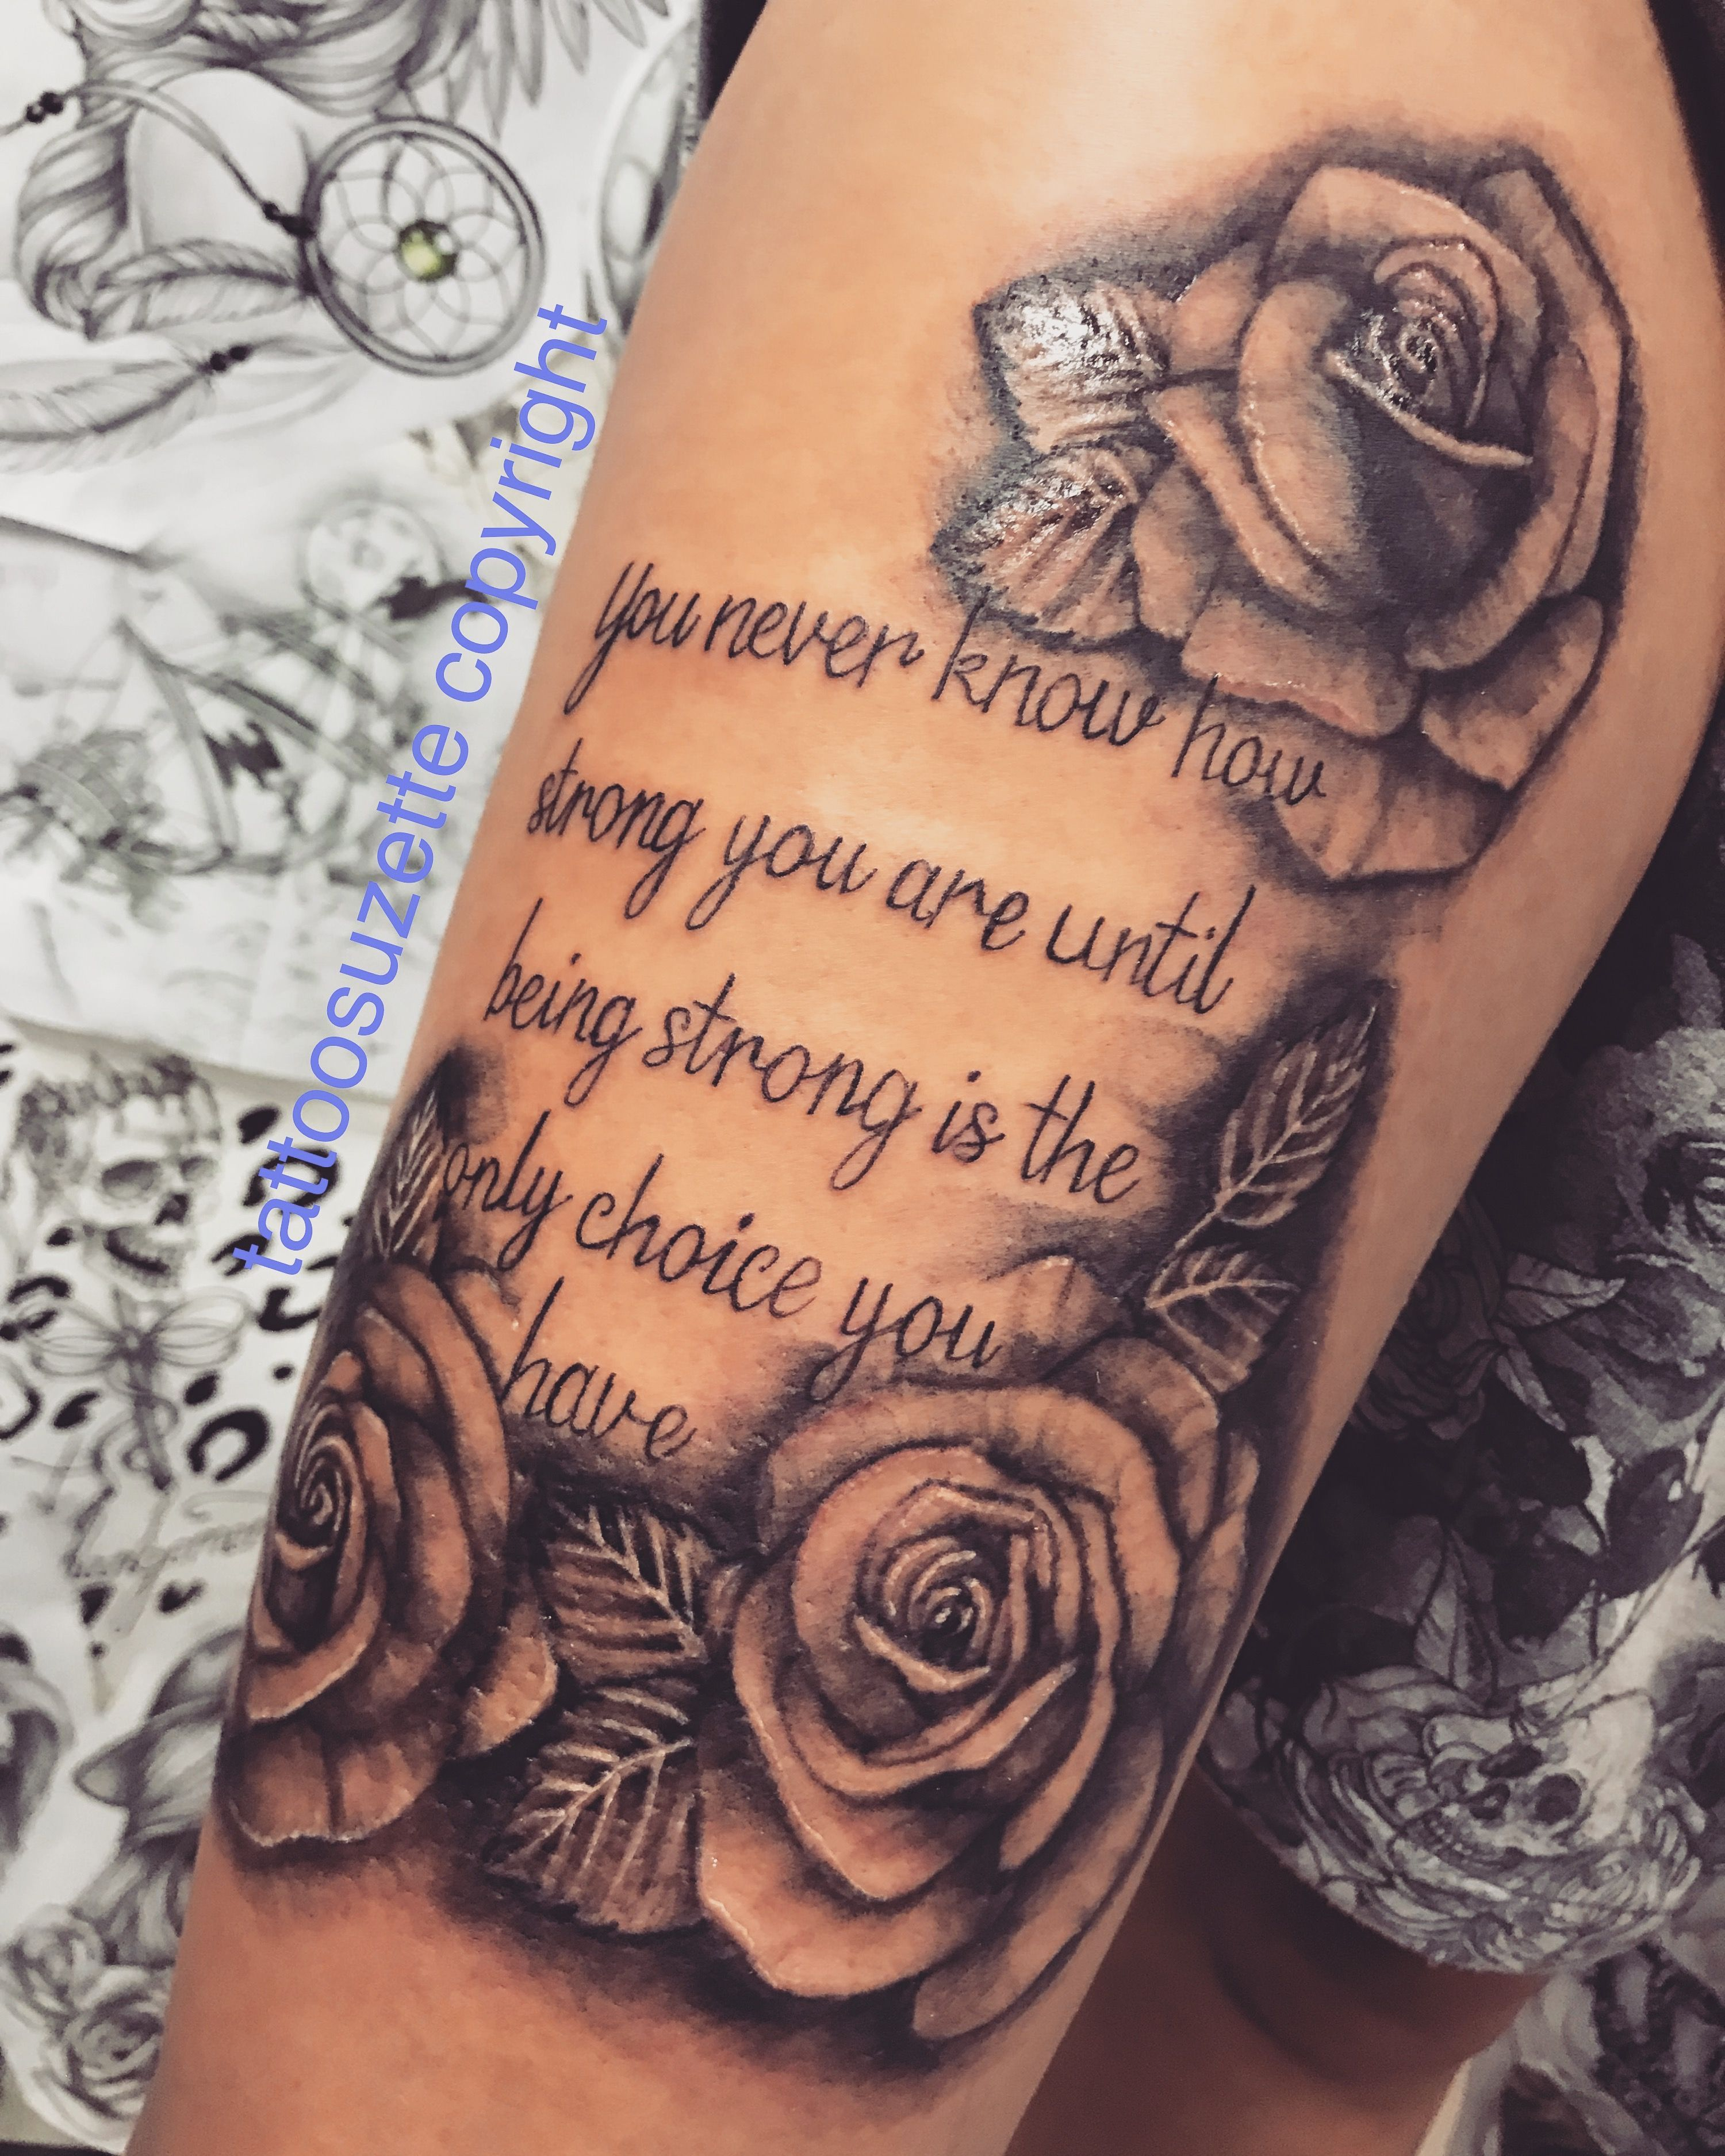 Untitled In 2020 Pretty Tattoos For Women Ankle Tattoos For Women Arm Tattoos For Women Upper